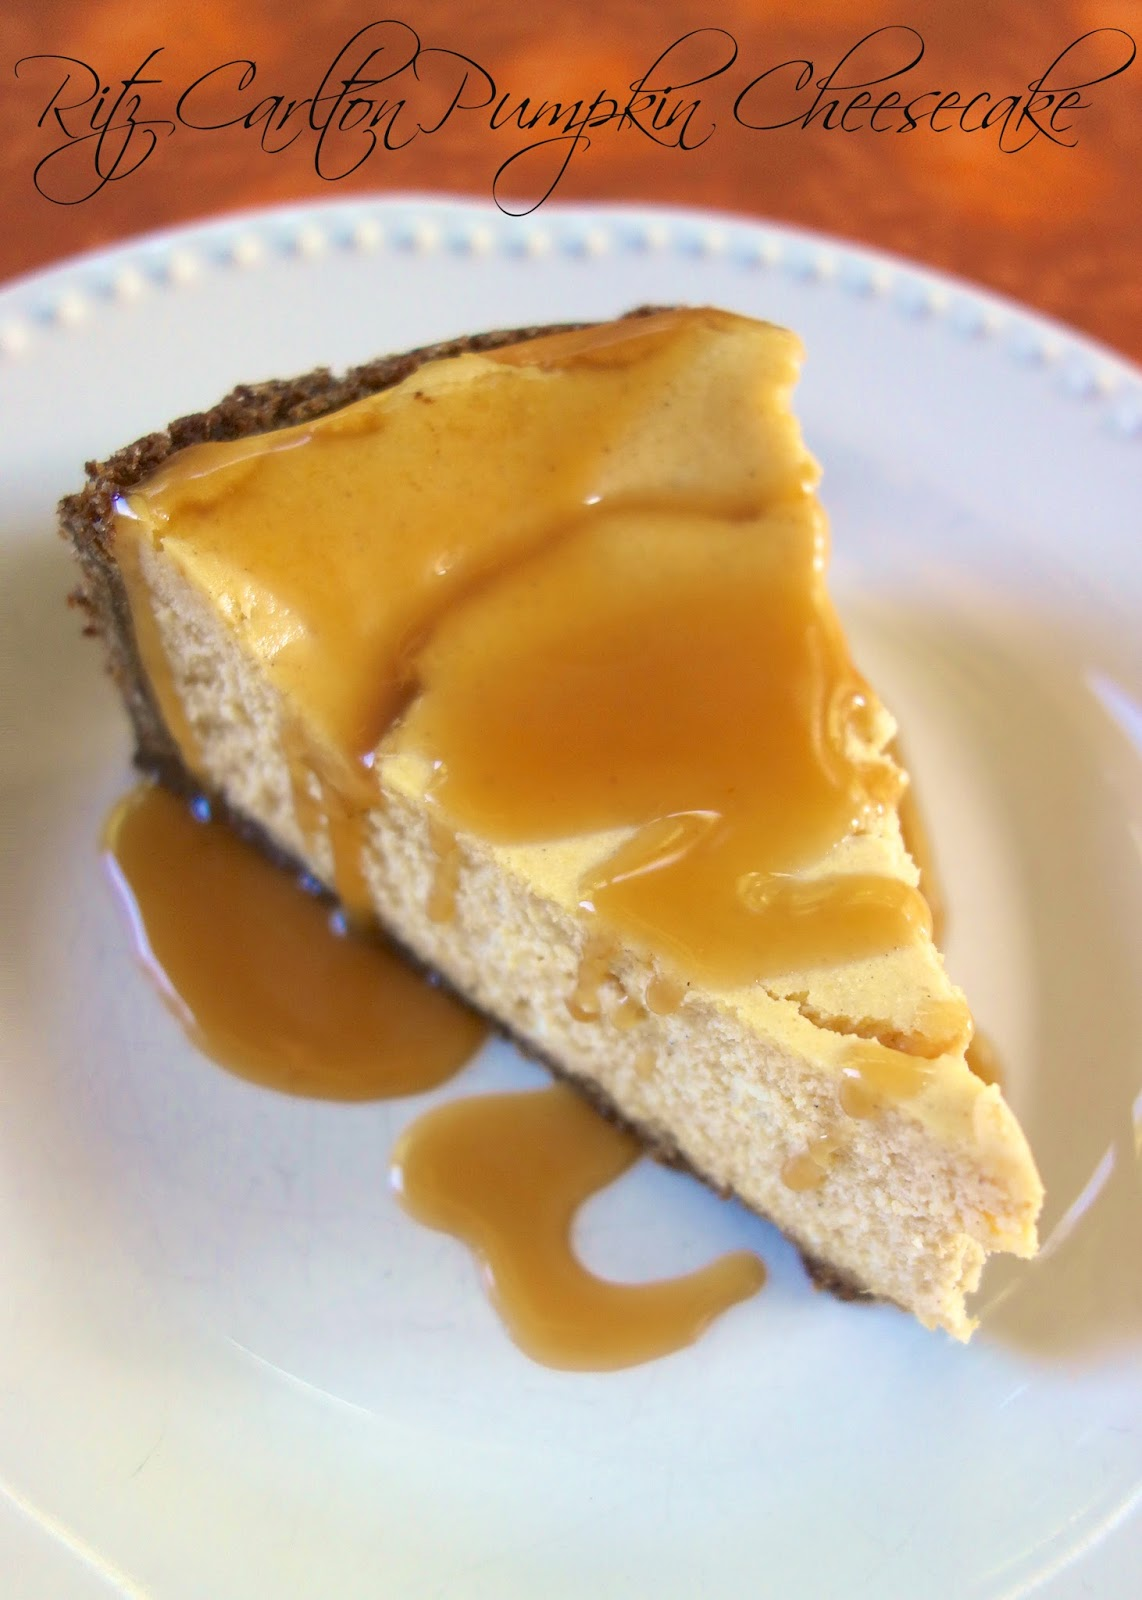 Ritz Carlton Pumpkin Cheesecake with Caramel Sauce | Plain Chicken